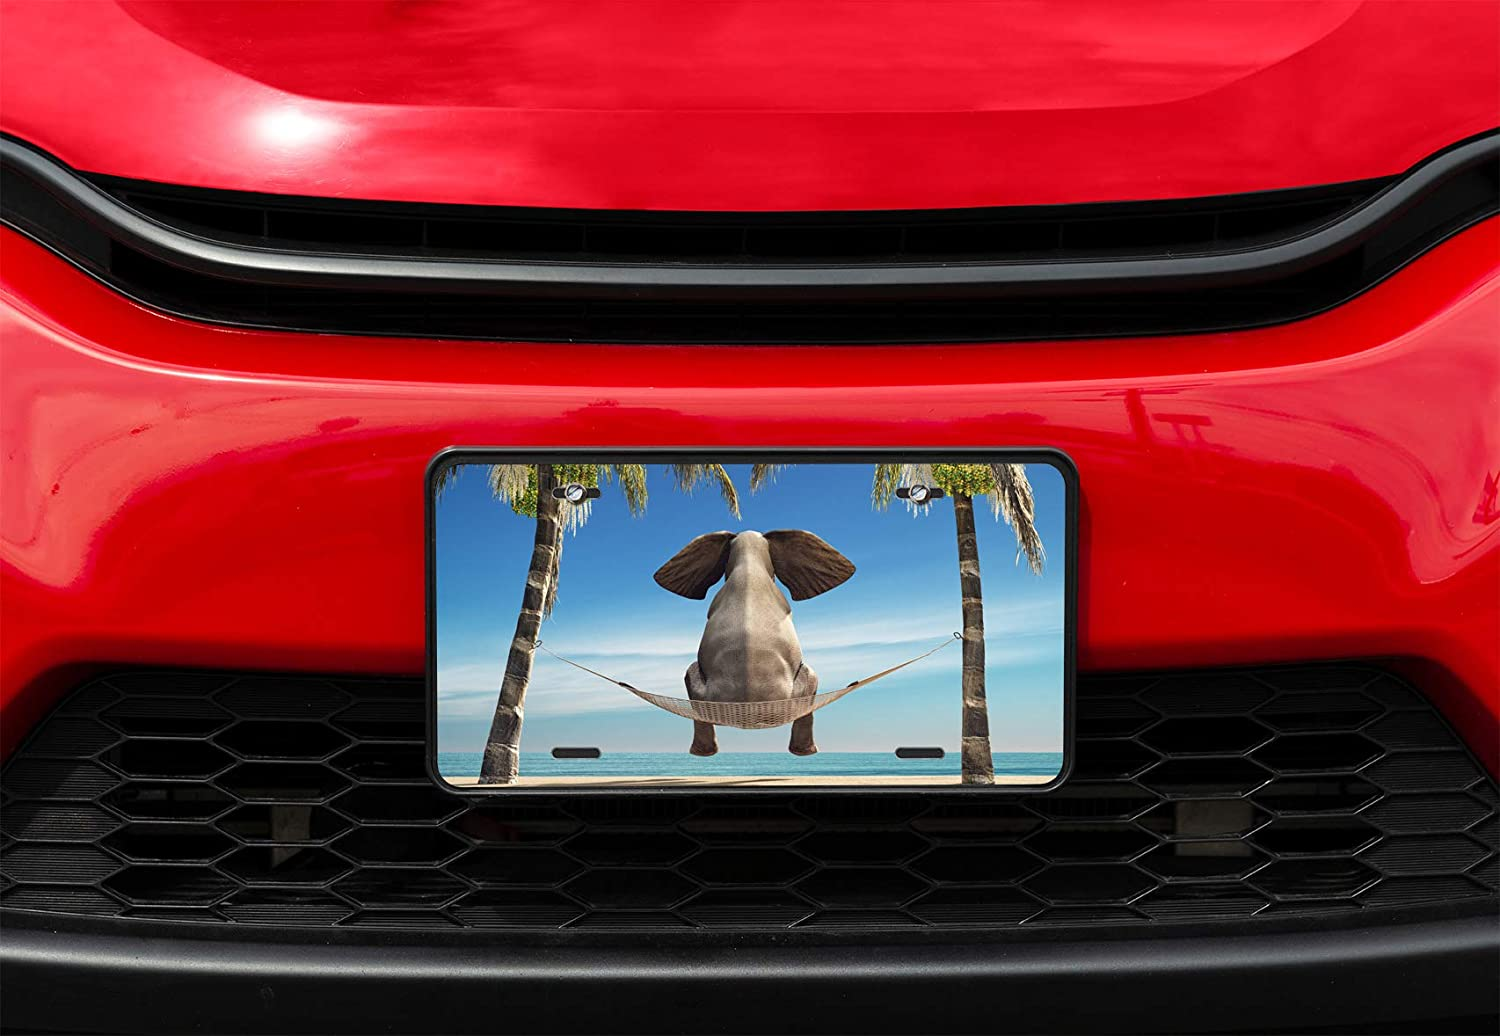 Amcove License Plate Cute Panda Decorative Car Front License Plate,Vanity Tag,Metal Car Plate,Aluminum Novelty License Plate,6 X 12 Inch 4 Holes